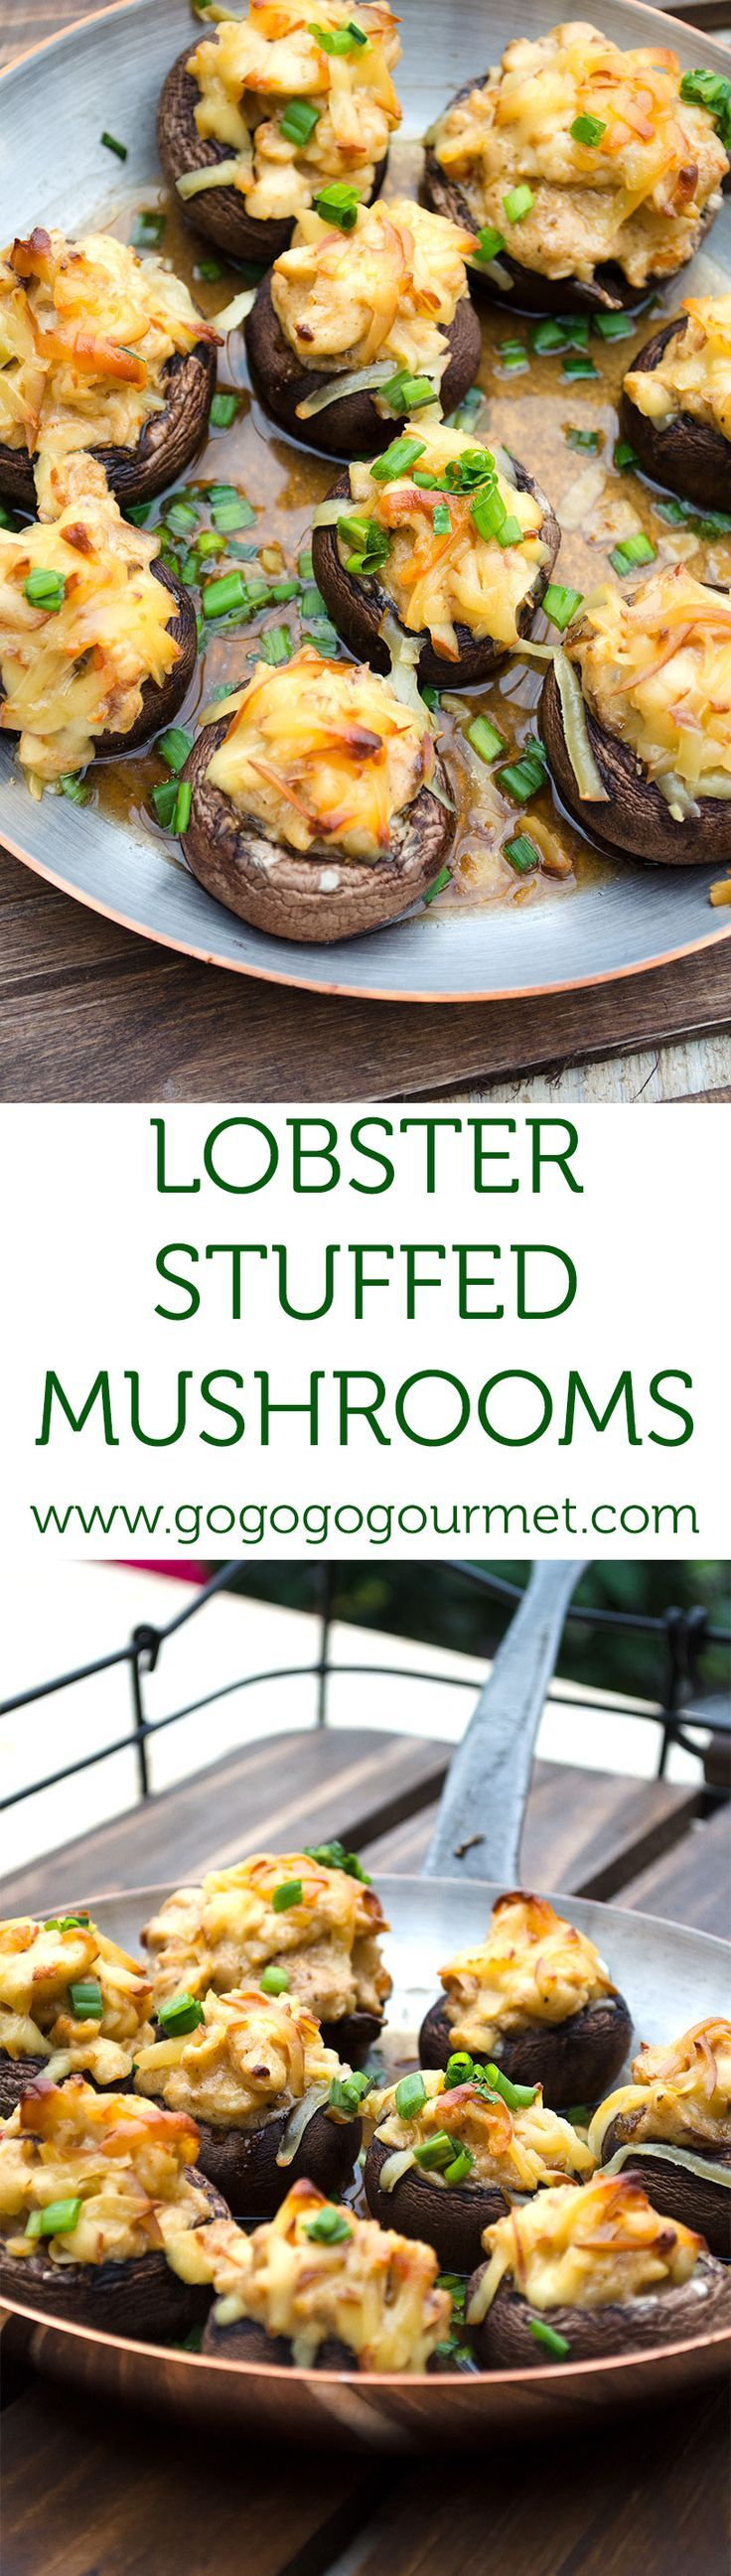 These stuffed mushrooms get an added touch of decadence and elegance from chunks of buttery lobster and smoked gouda. | Go Go Go Gourmet @gogogogourmet